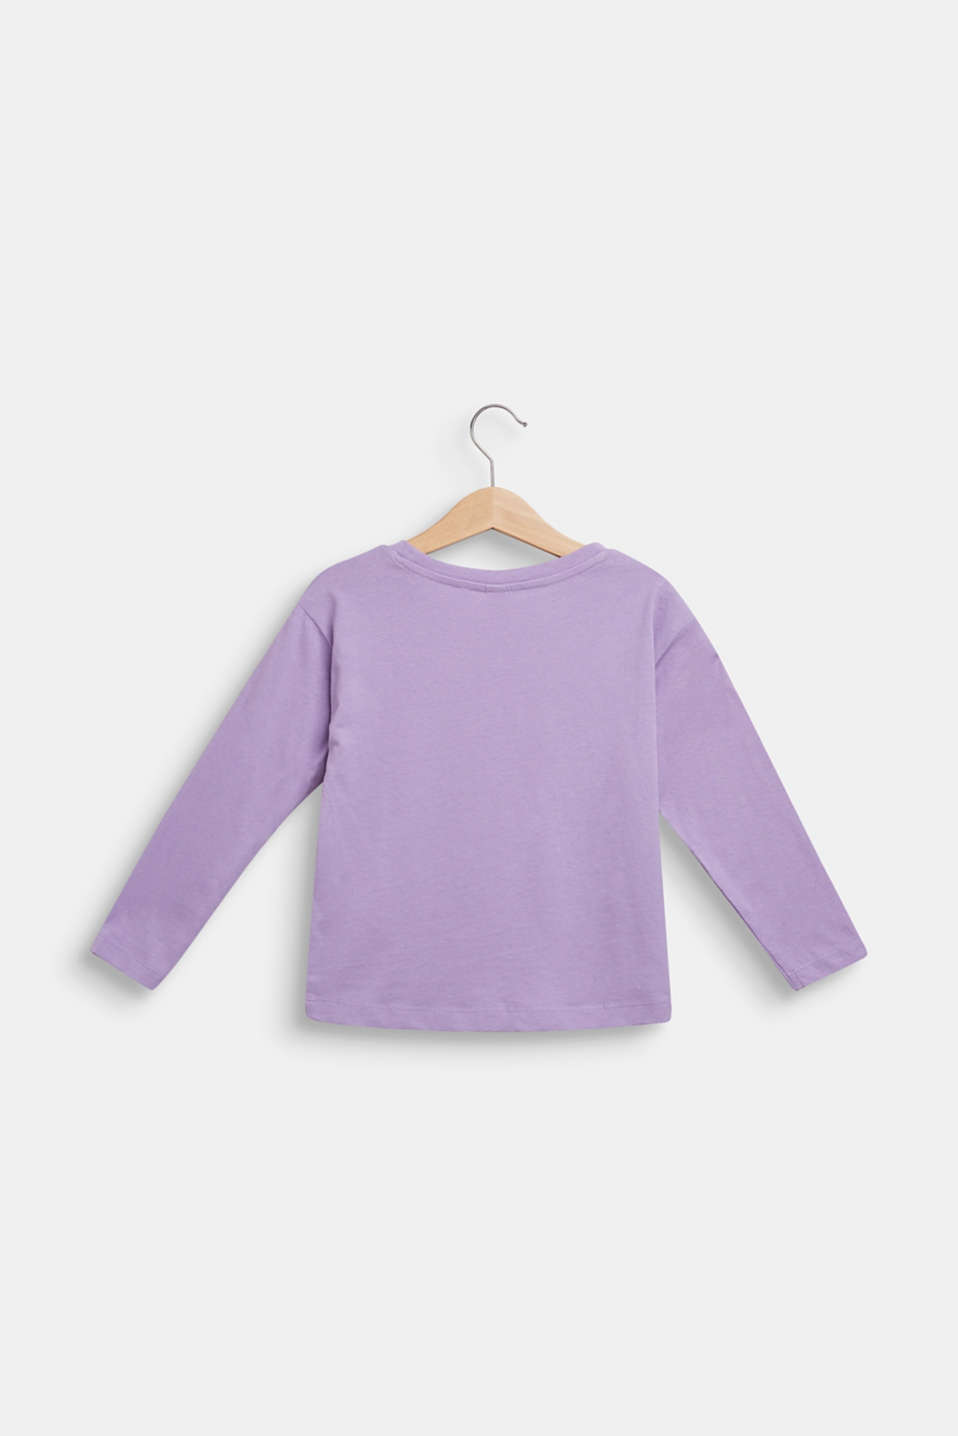 Long sleeve top with glitter polka dots, 100% cotton, BLOSSOM, detail image number 1